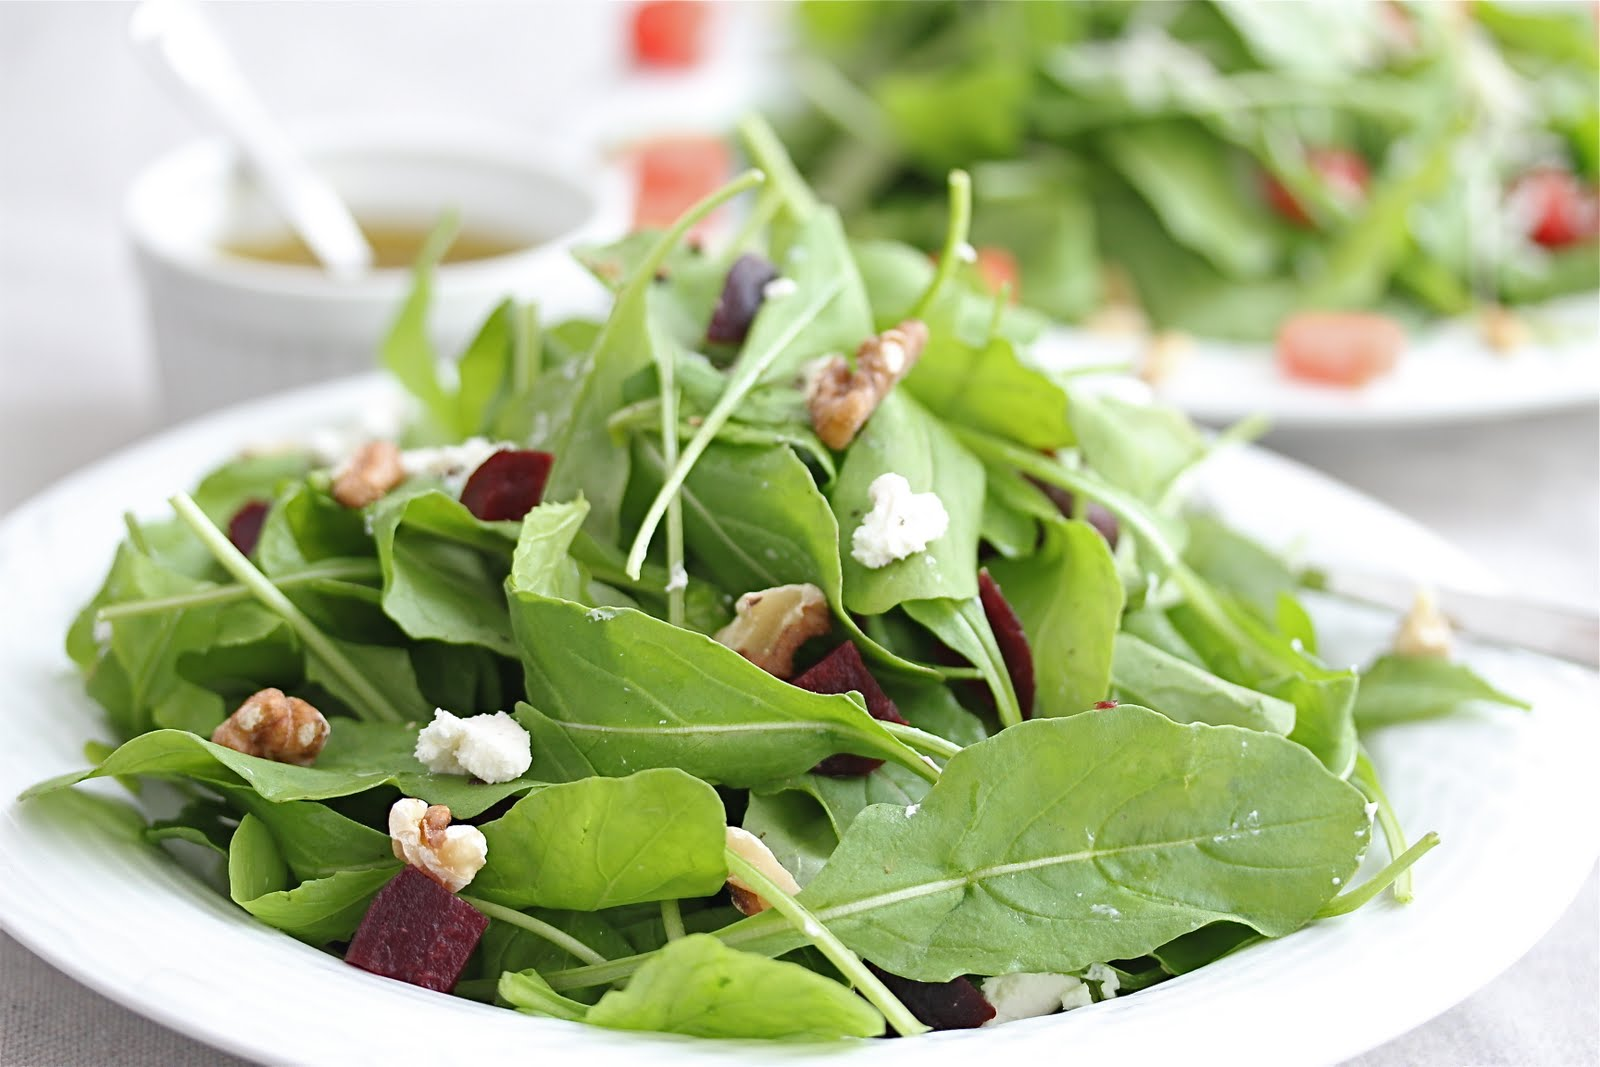 Arugula and Roasted Beet Salad with Goat Cheese and Lemon Olive Oil Dressing